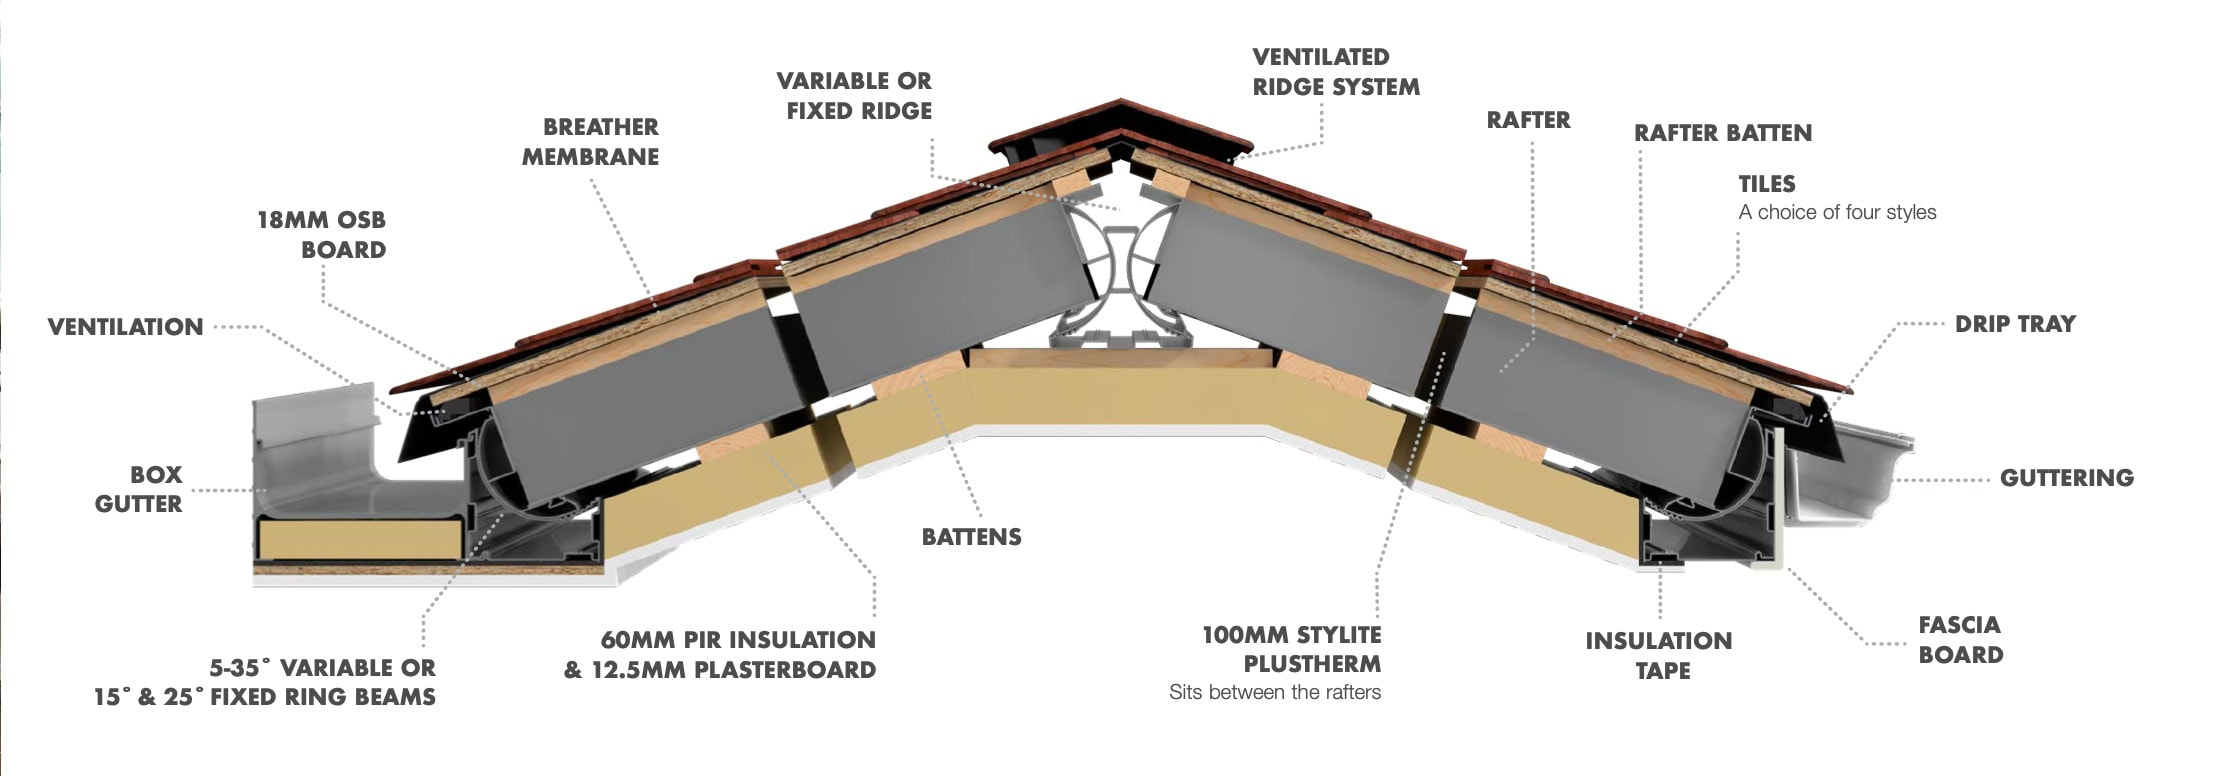 Equinox Roof Cross Section